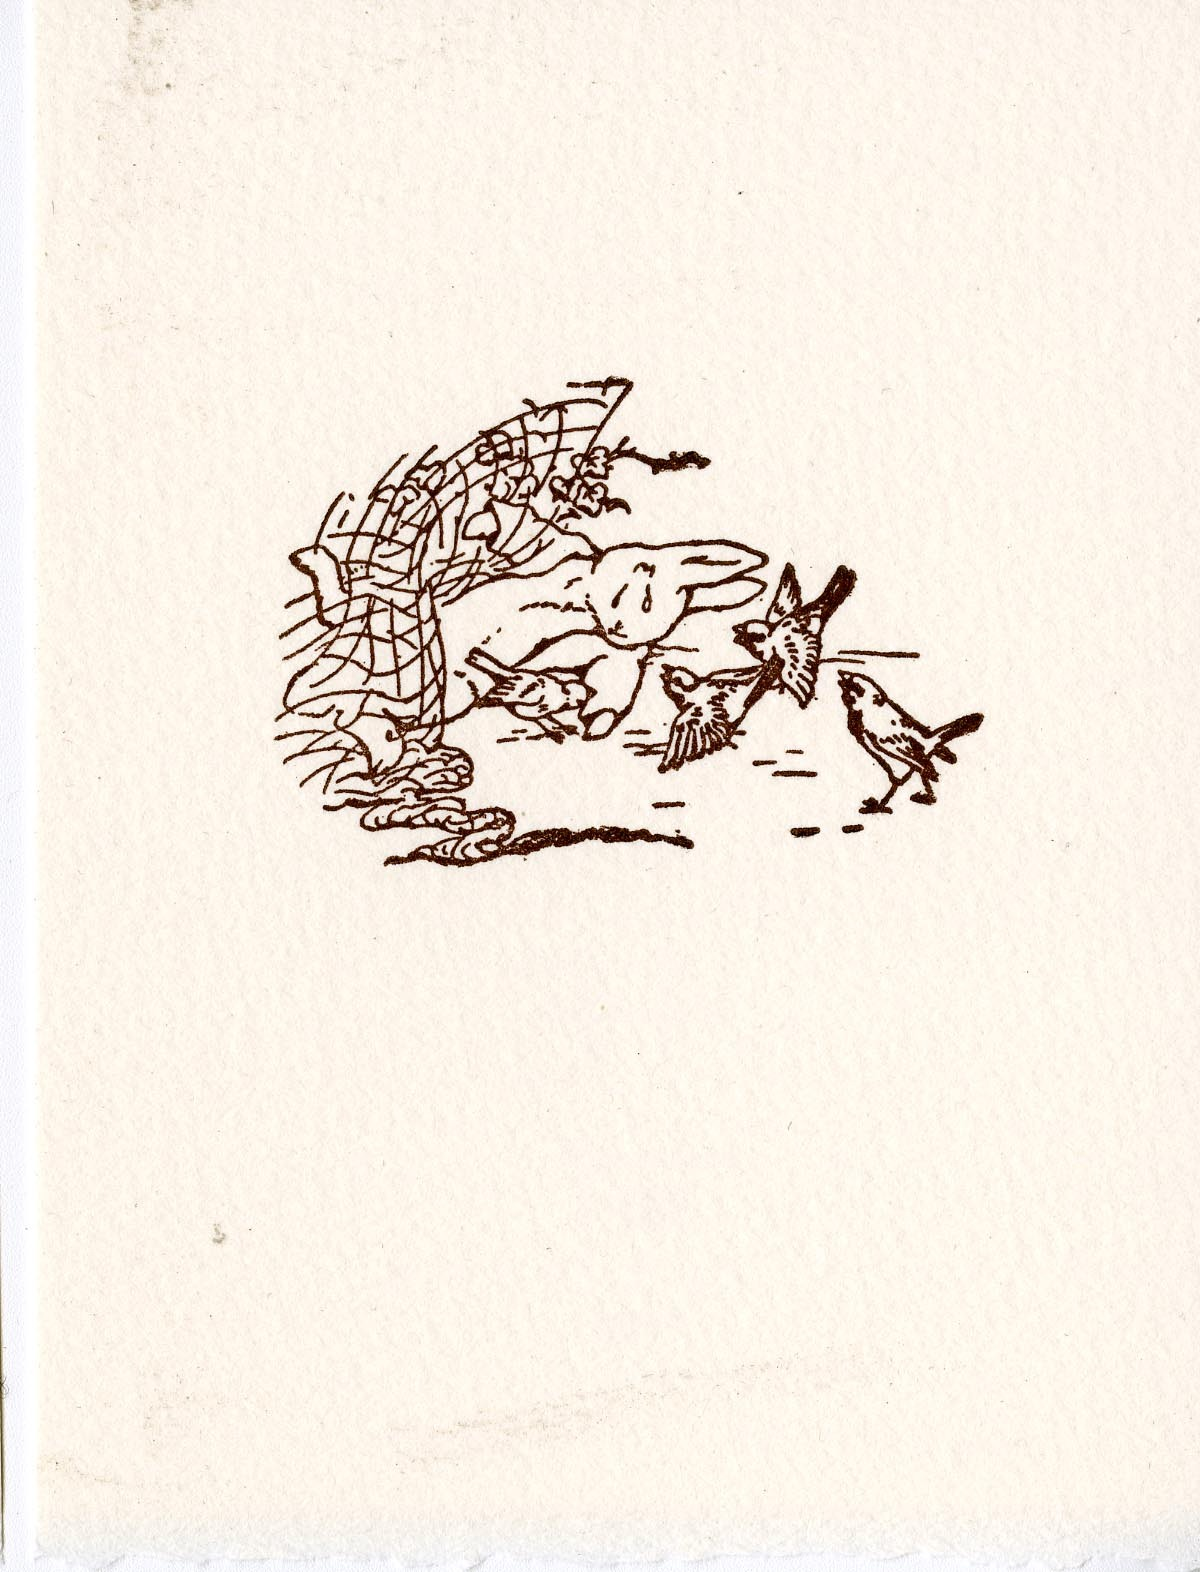 "Block 19 ""Some friendly sparrows…implored him to exert himself"" from The Tale of Peter Rabbit: Prints from the Original Blocks"